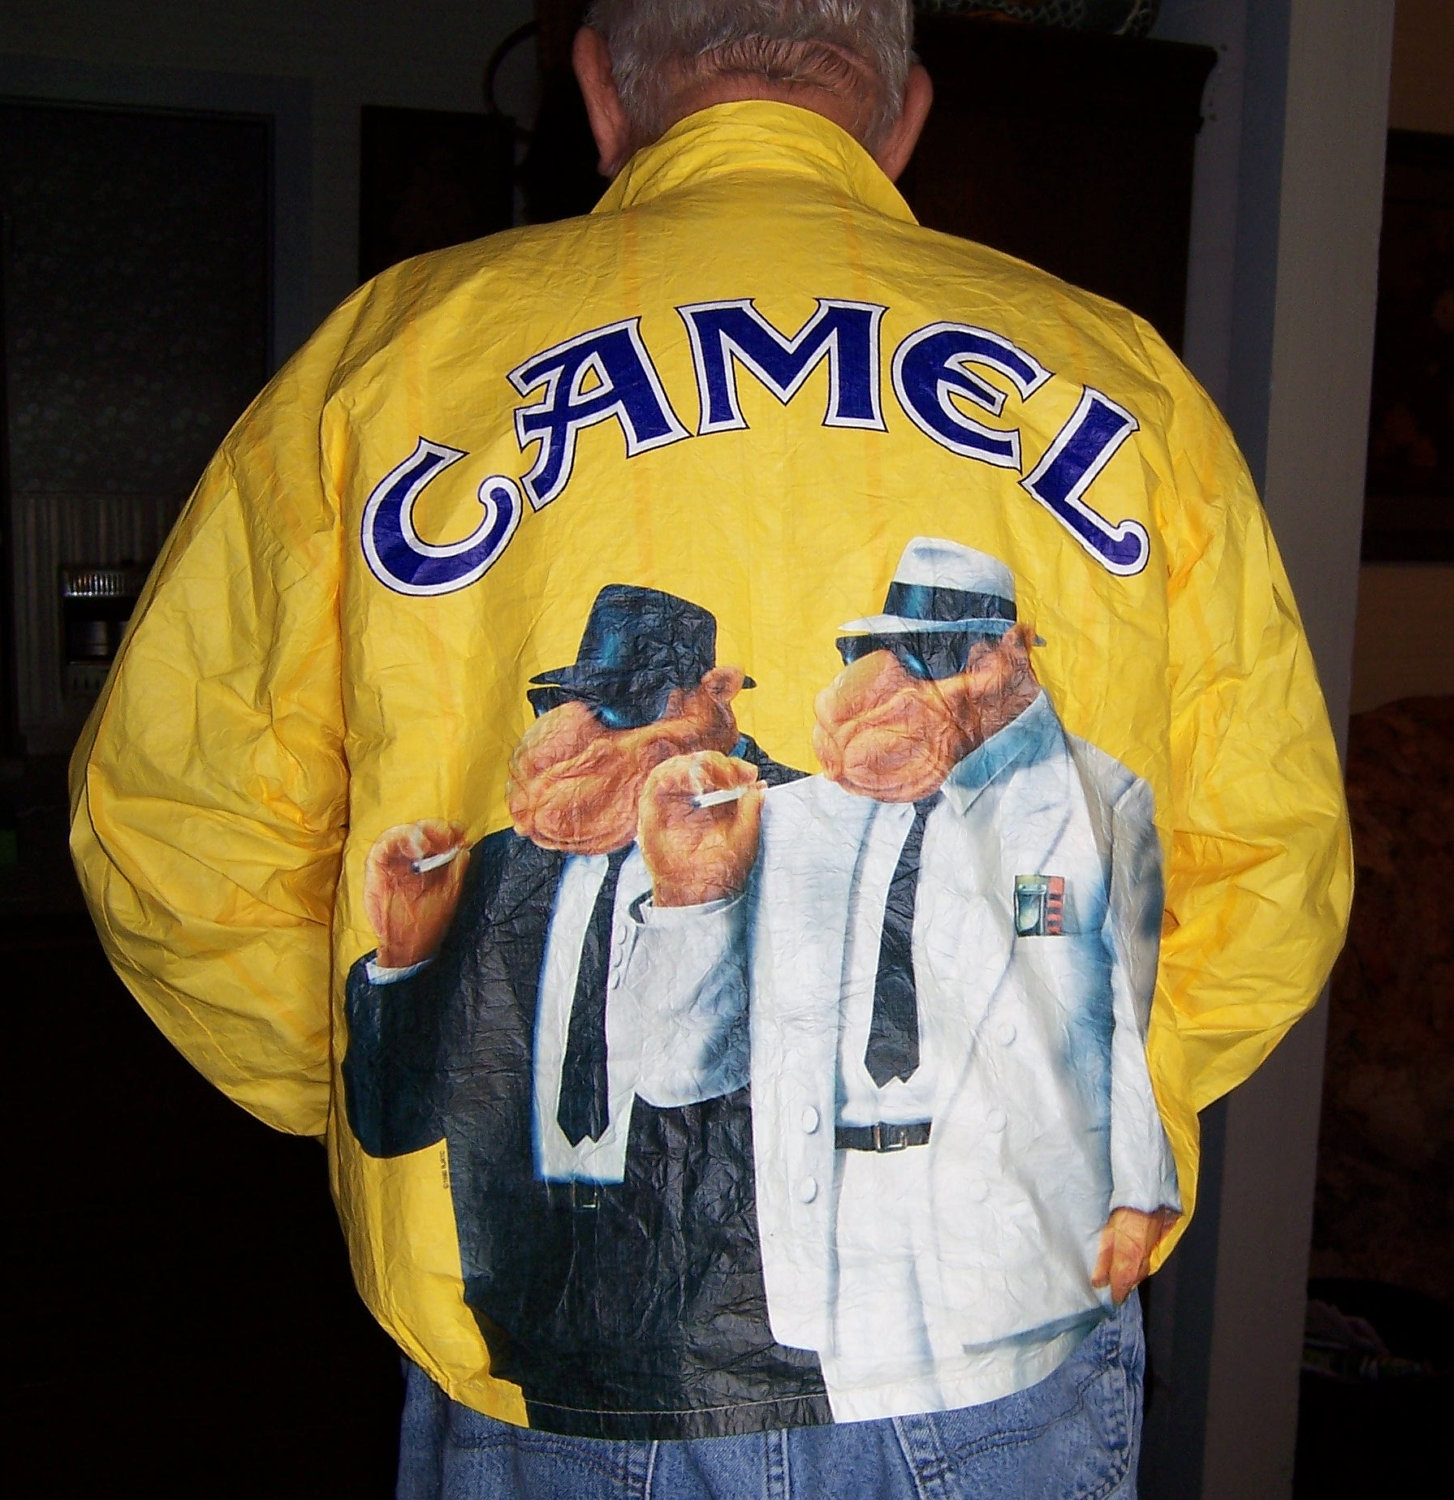 Nyc S Largest Selection Of Vintage Camel Cigarette Clothing Metropolis Vintage N Y C